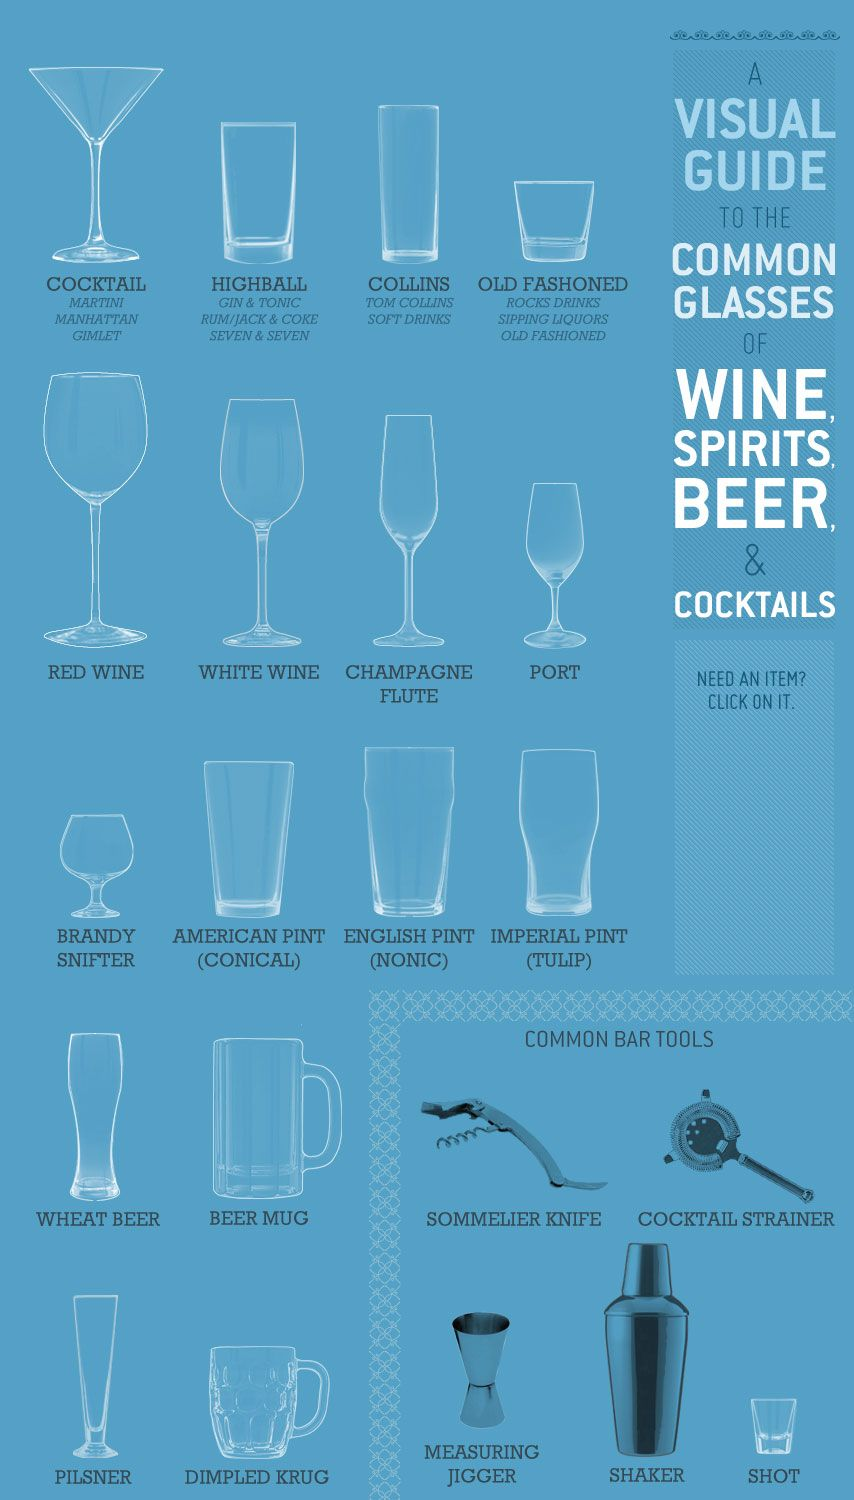 Good A Visual Guide To The Common Glasses Of Wine, Spirits, Beer, U0026 Cocktails